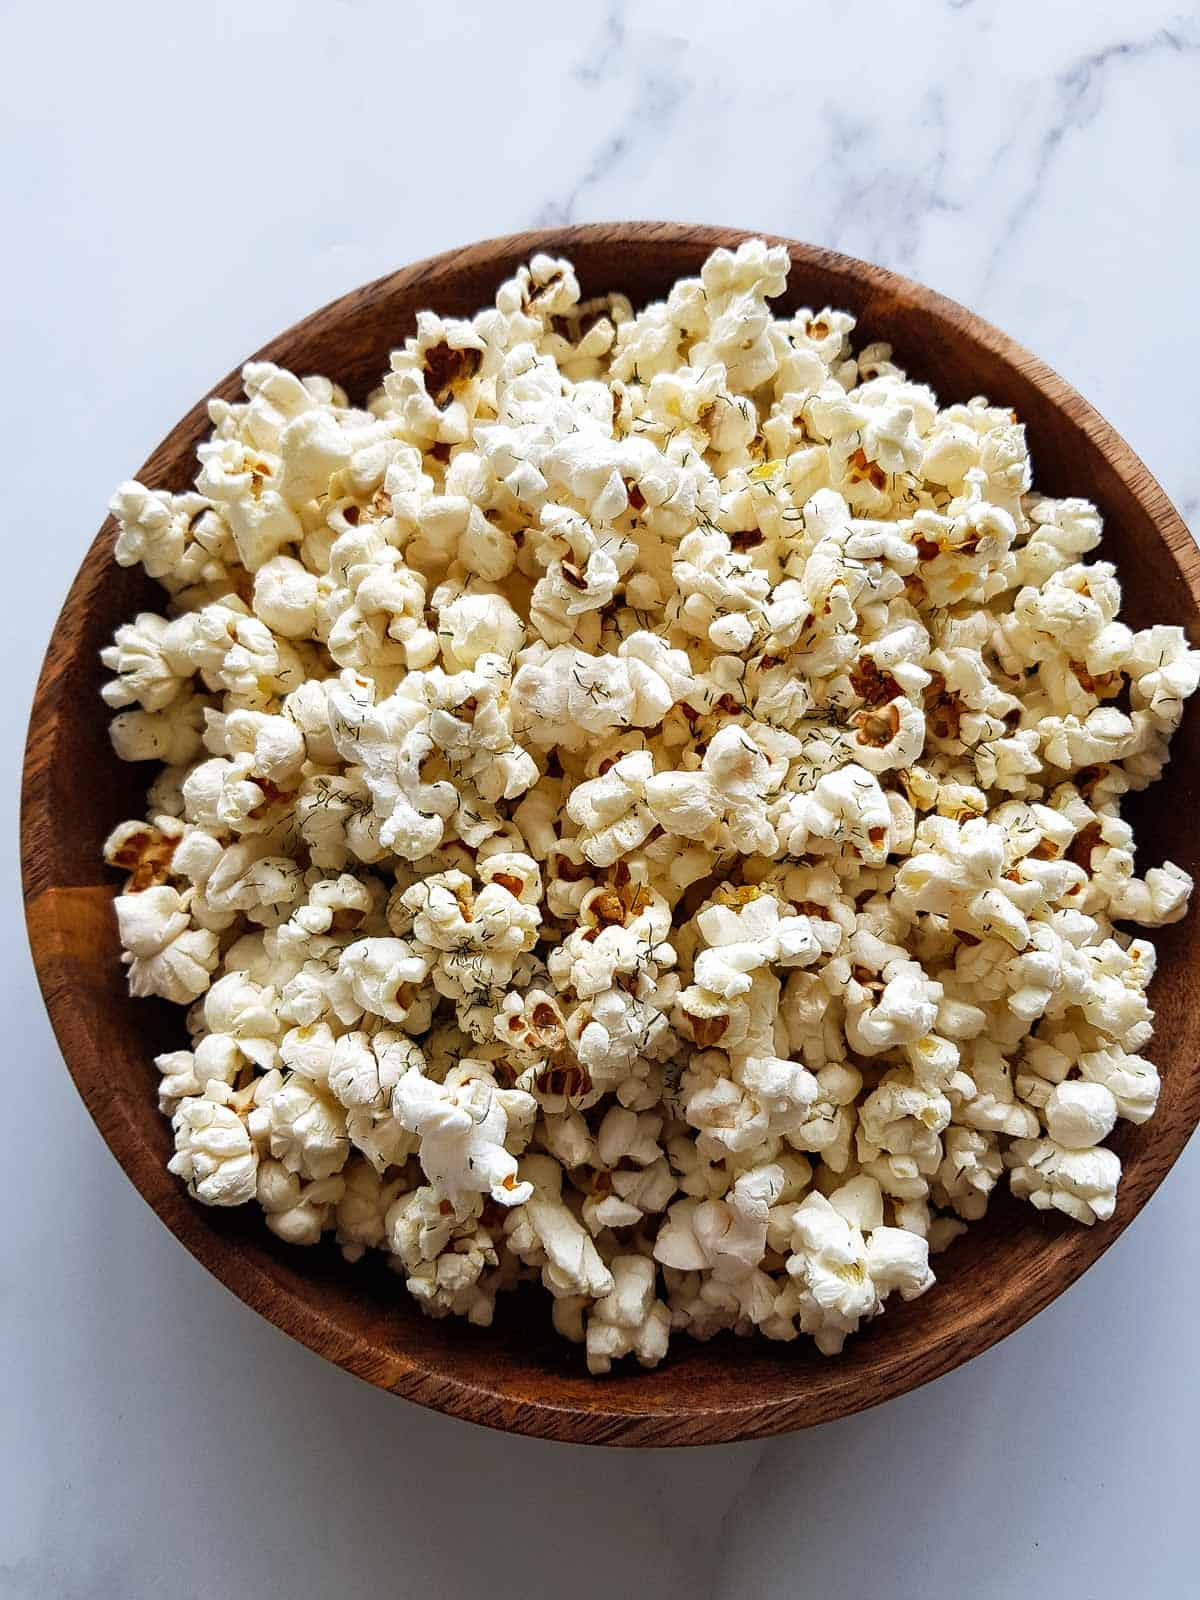 Dill pickle popcorn in a wooden bowl.